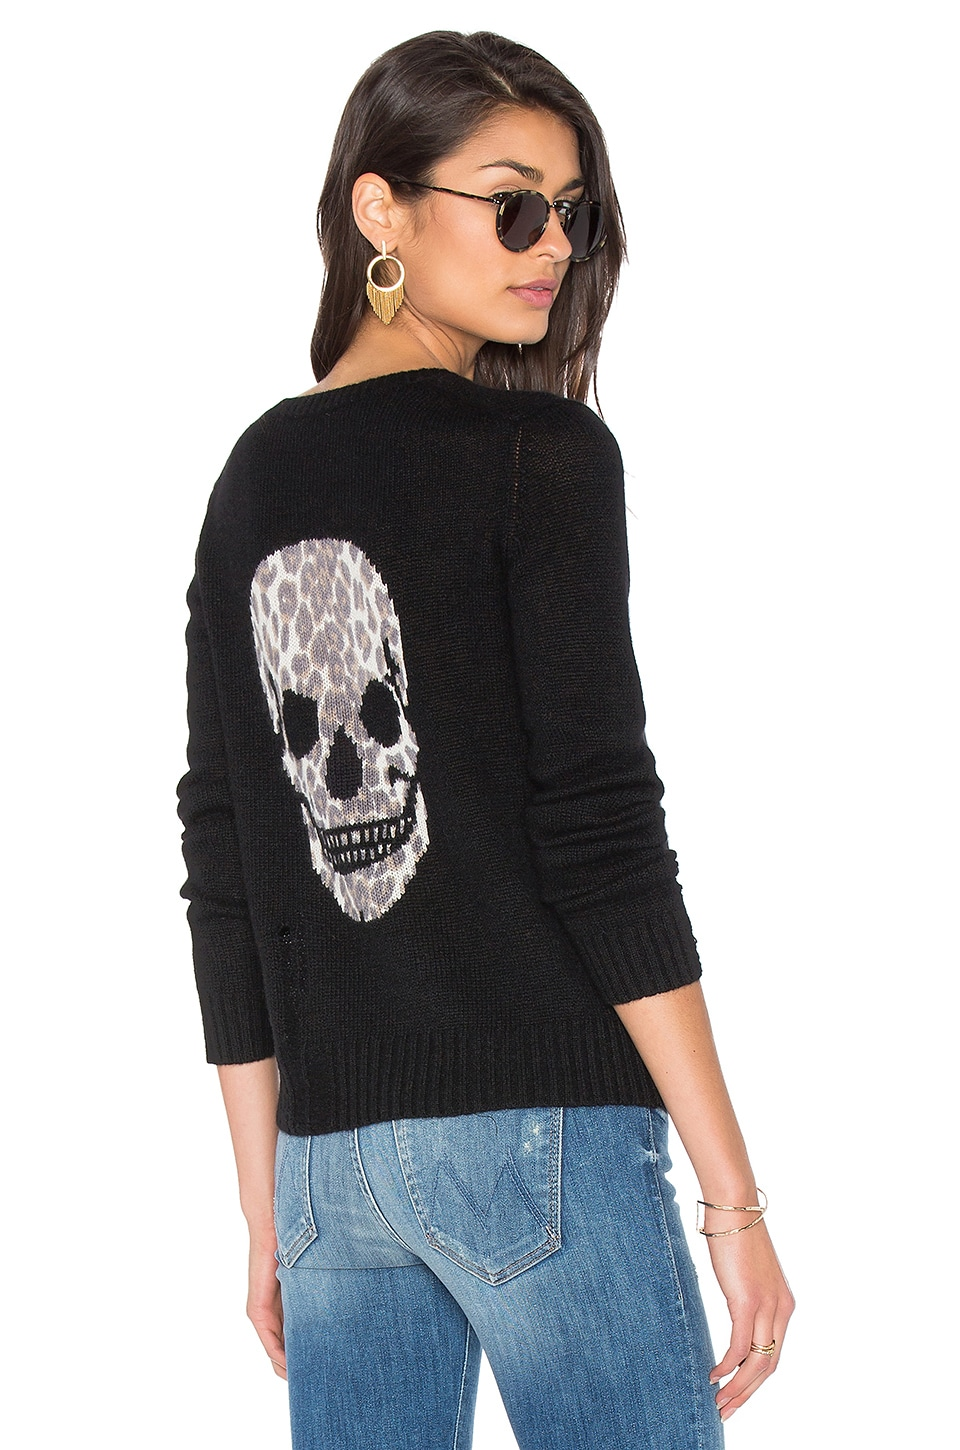 360 Sweater Raj Cashmere Skull Sweater in Black